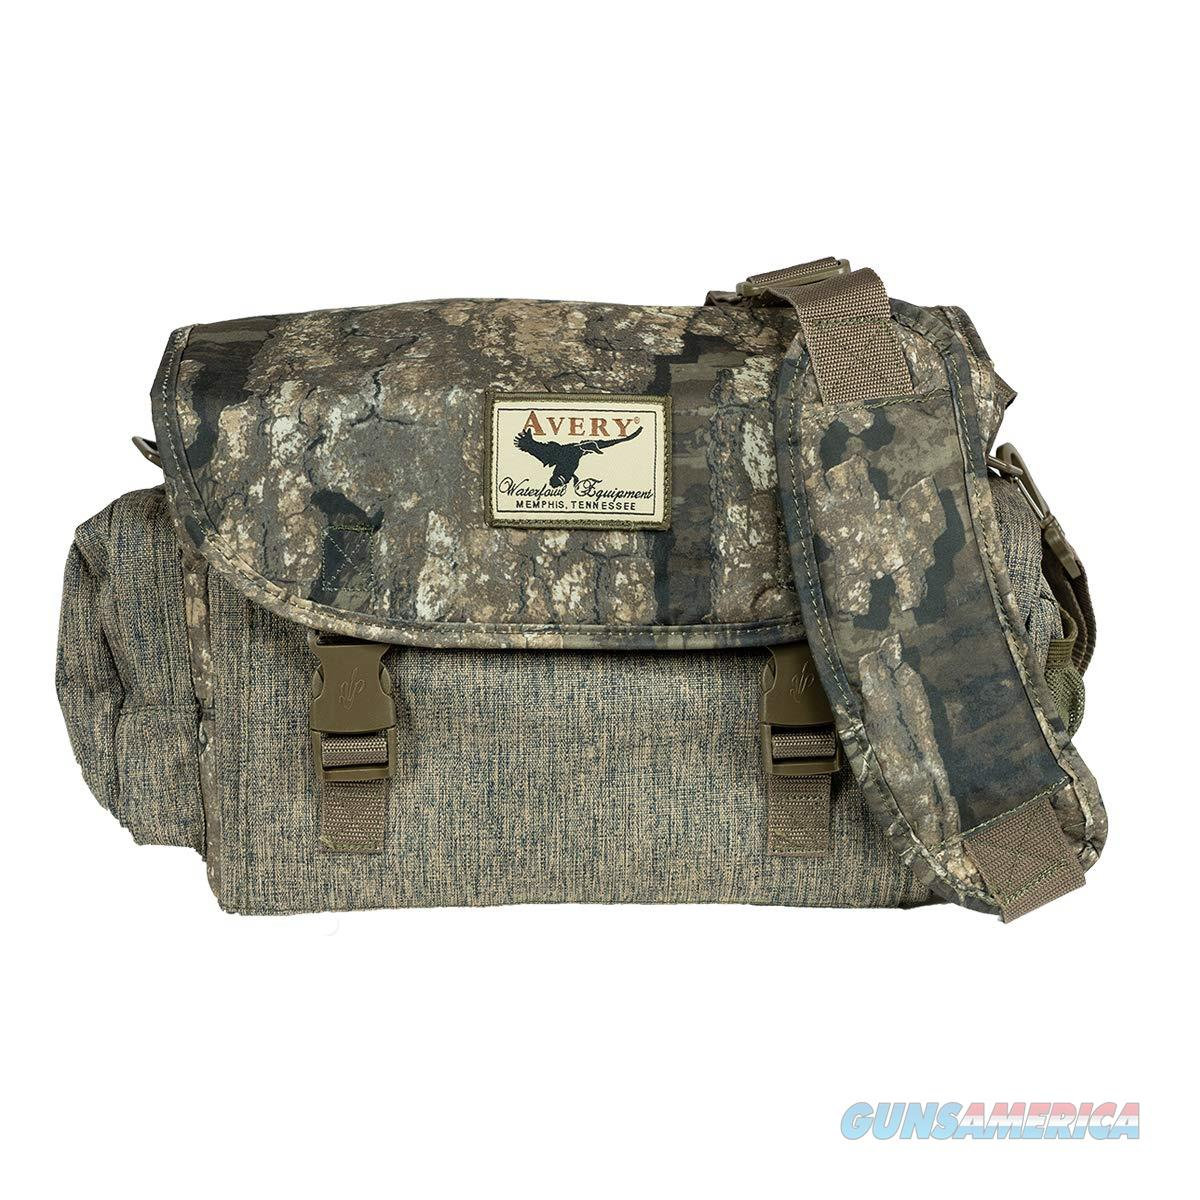 Avery Floating 2.0 Blind Bag Timber NEW  Non-Guns > Hunting Clothing and Equipment > Ammo Pouches/Holders/Shell Bags